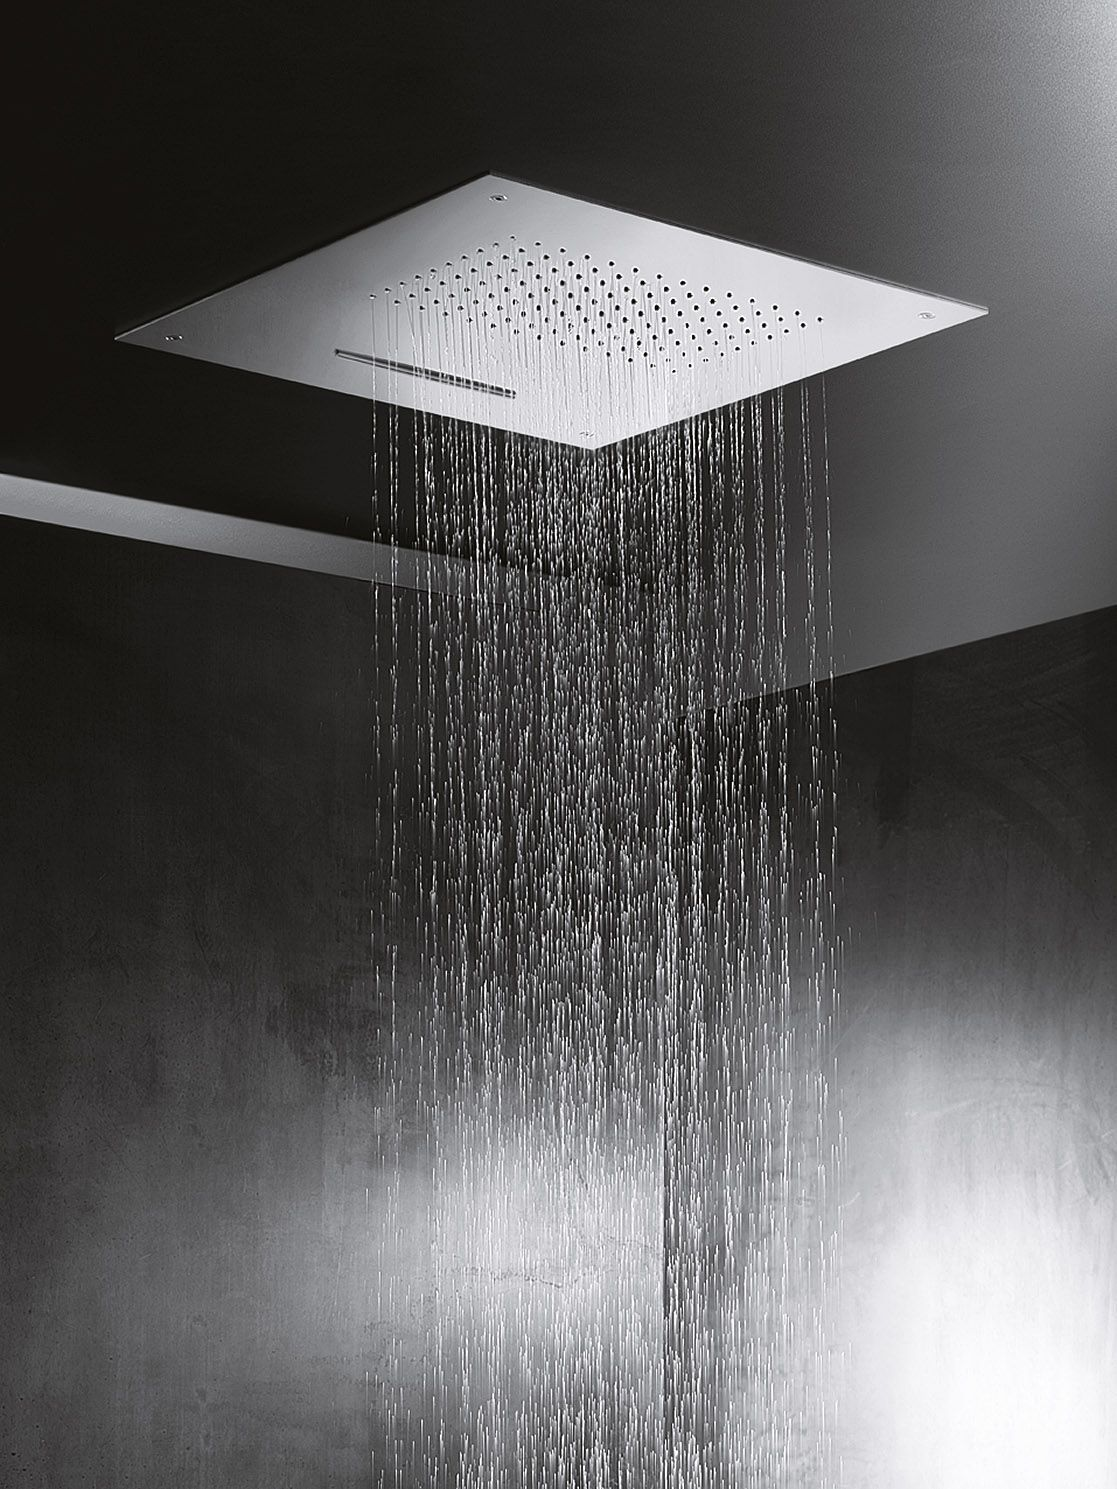 Doccinox Showers Are Crafted From Bright Stainless Steel And Contain An Internal Cartridge System Meaning The Shower Water Is Cont Luxury Shower Shower Builtin